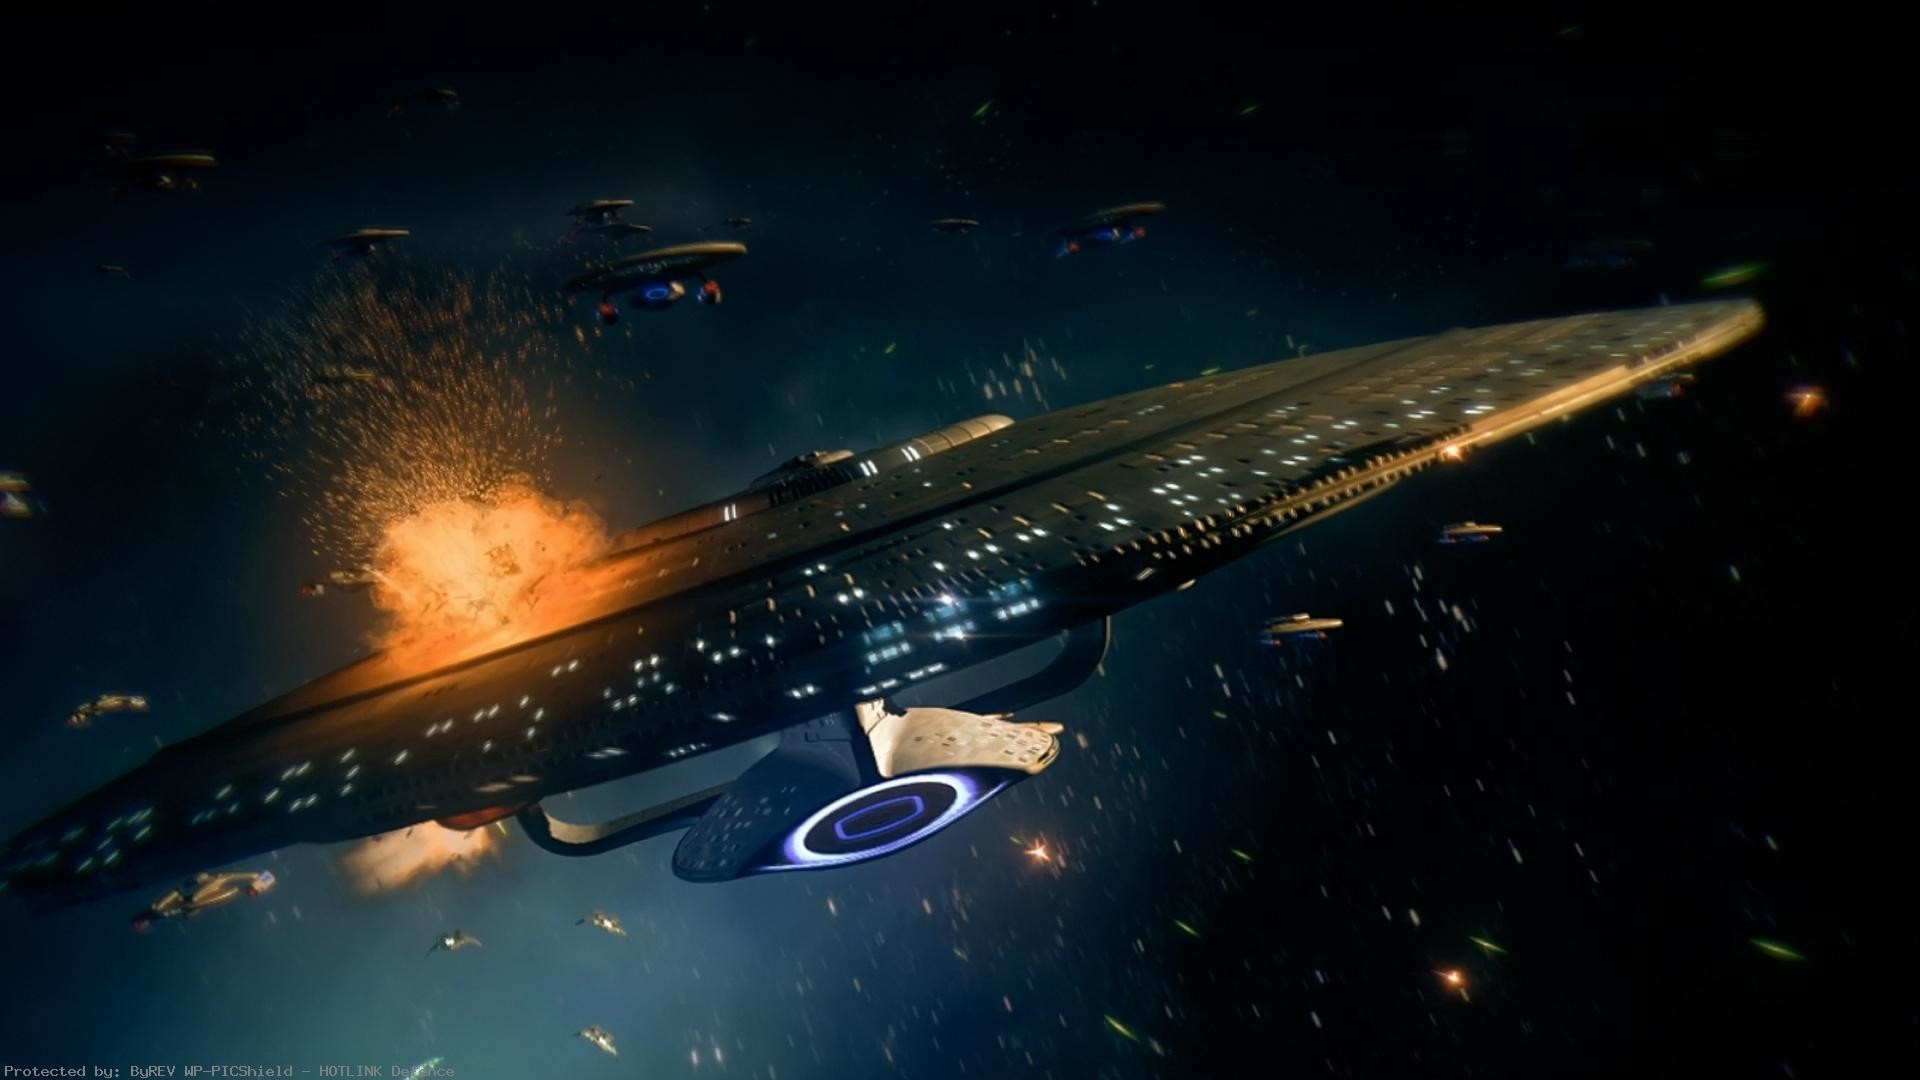 The-Galaxy-class-Enterprise-D-from-the-Star-